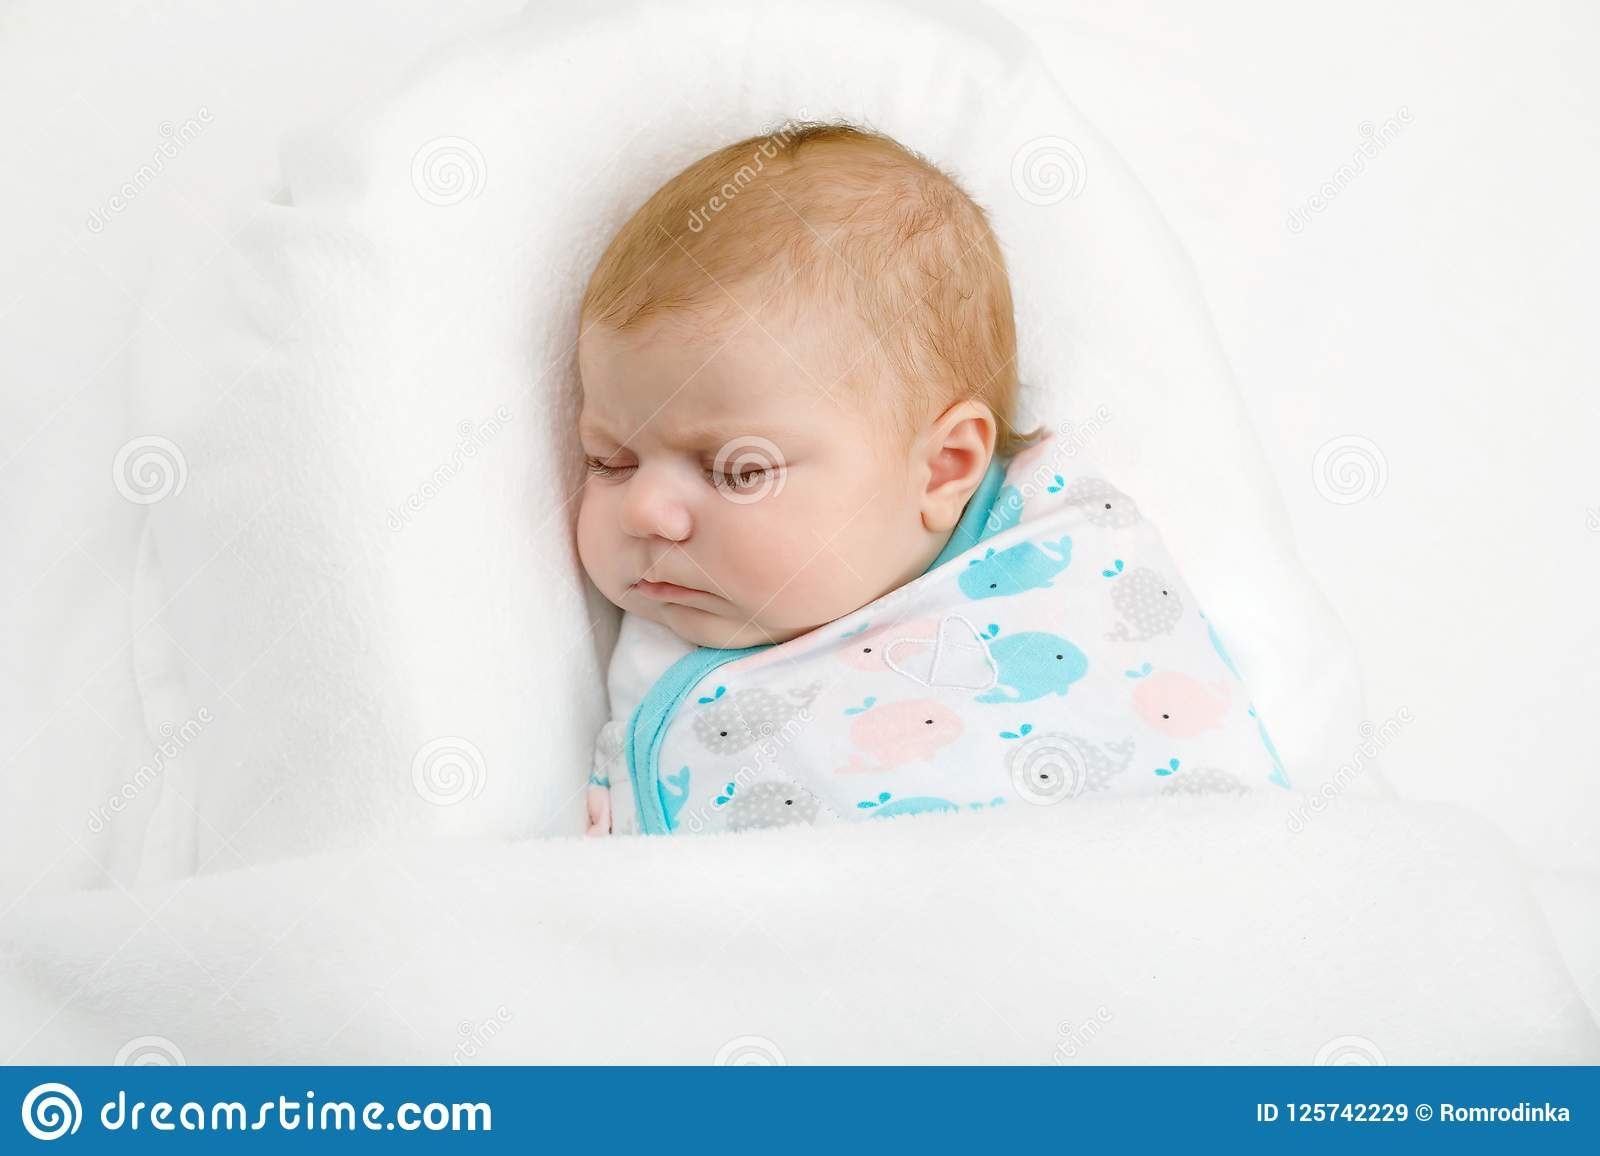 Cute Adorable Newborn Baby Wrapped In White Blanket Sleeping In